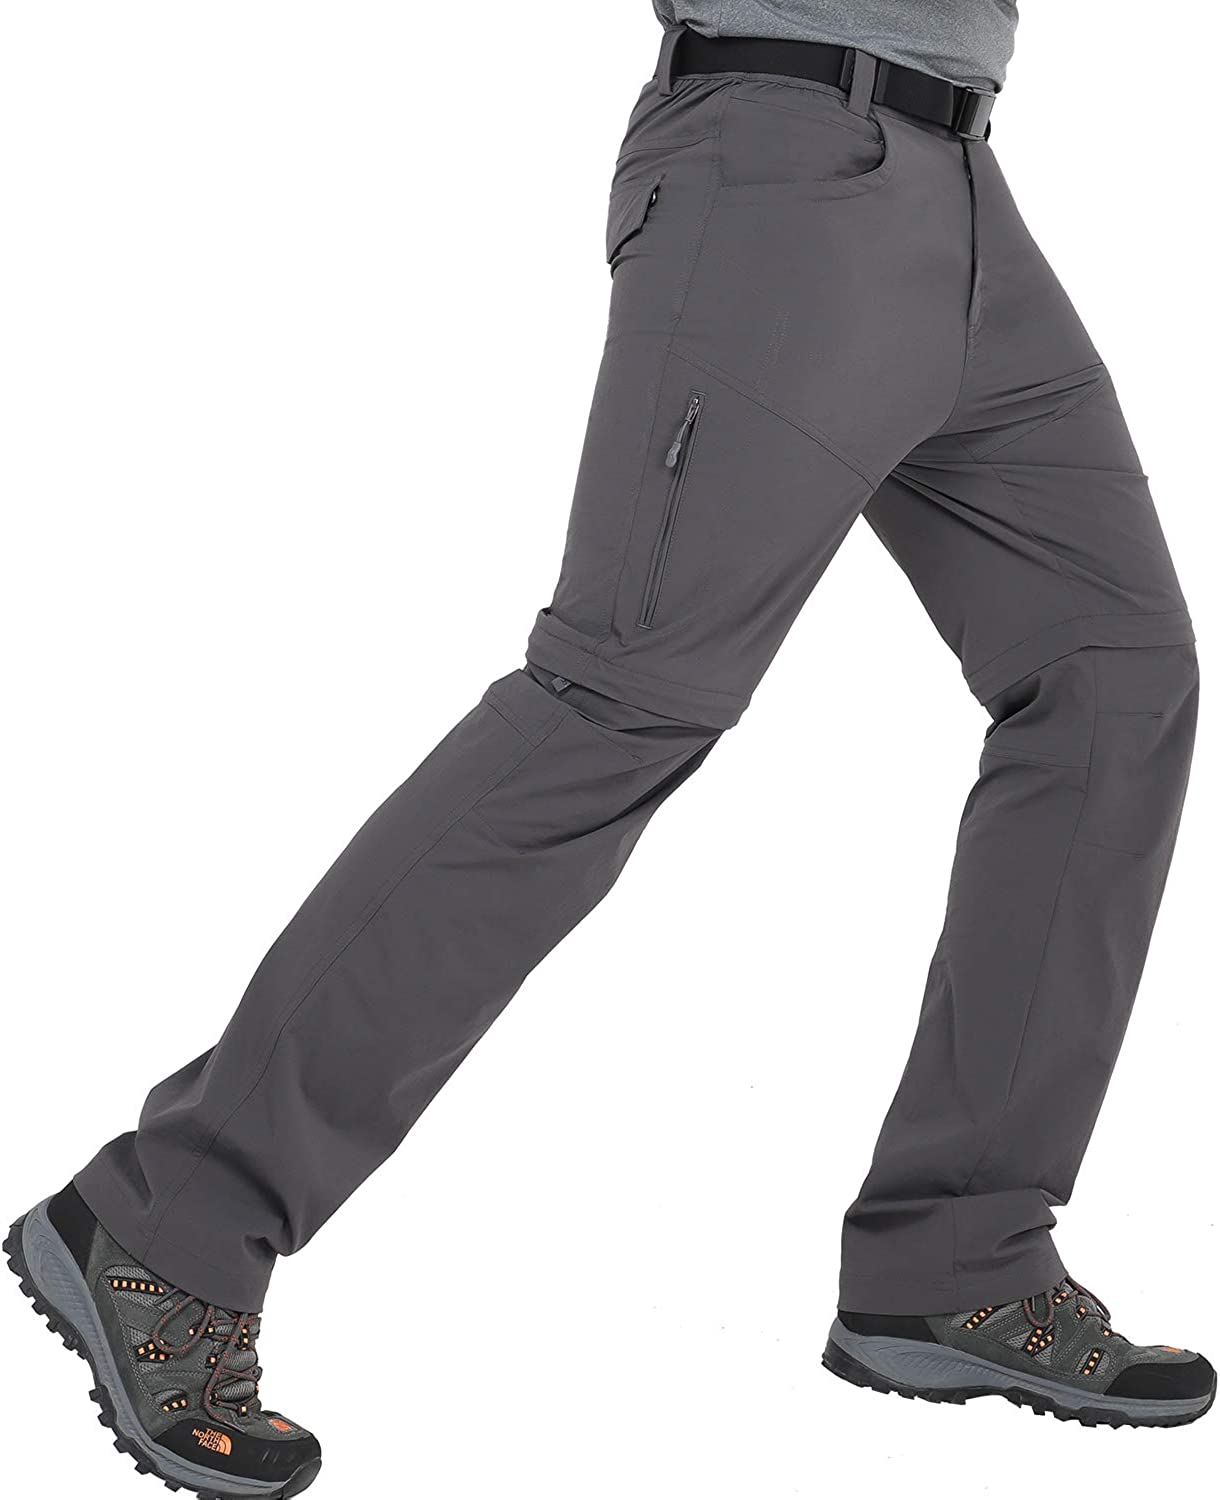 MIER Men's Convertible Quick Dry Hiking Pants Outdoor Nylon Travel Pants with 6 Pockets, Stretchy and Water Resistant